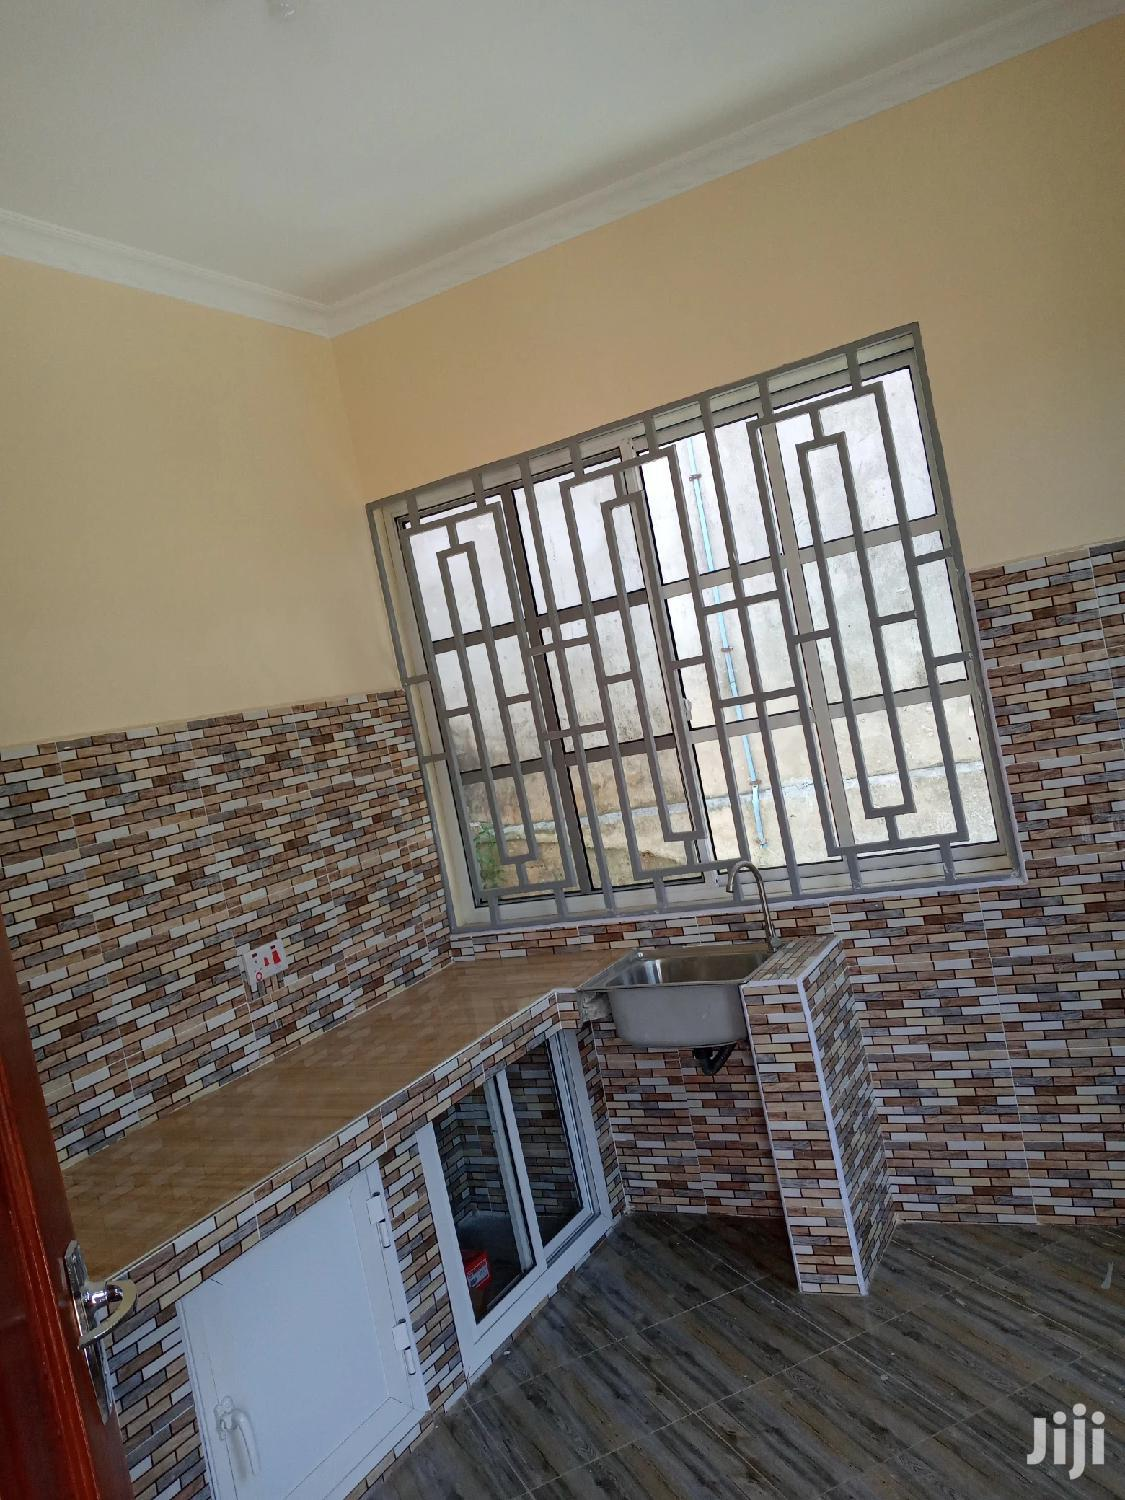 House For Rent At Kibanda Cha Mkaa | Houses & Apartments For Rent for sale in Mbezi, Kinondoni, Tanzania